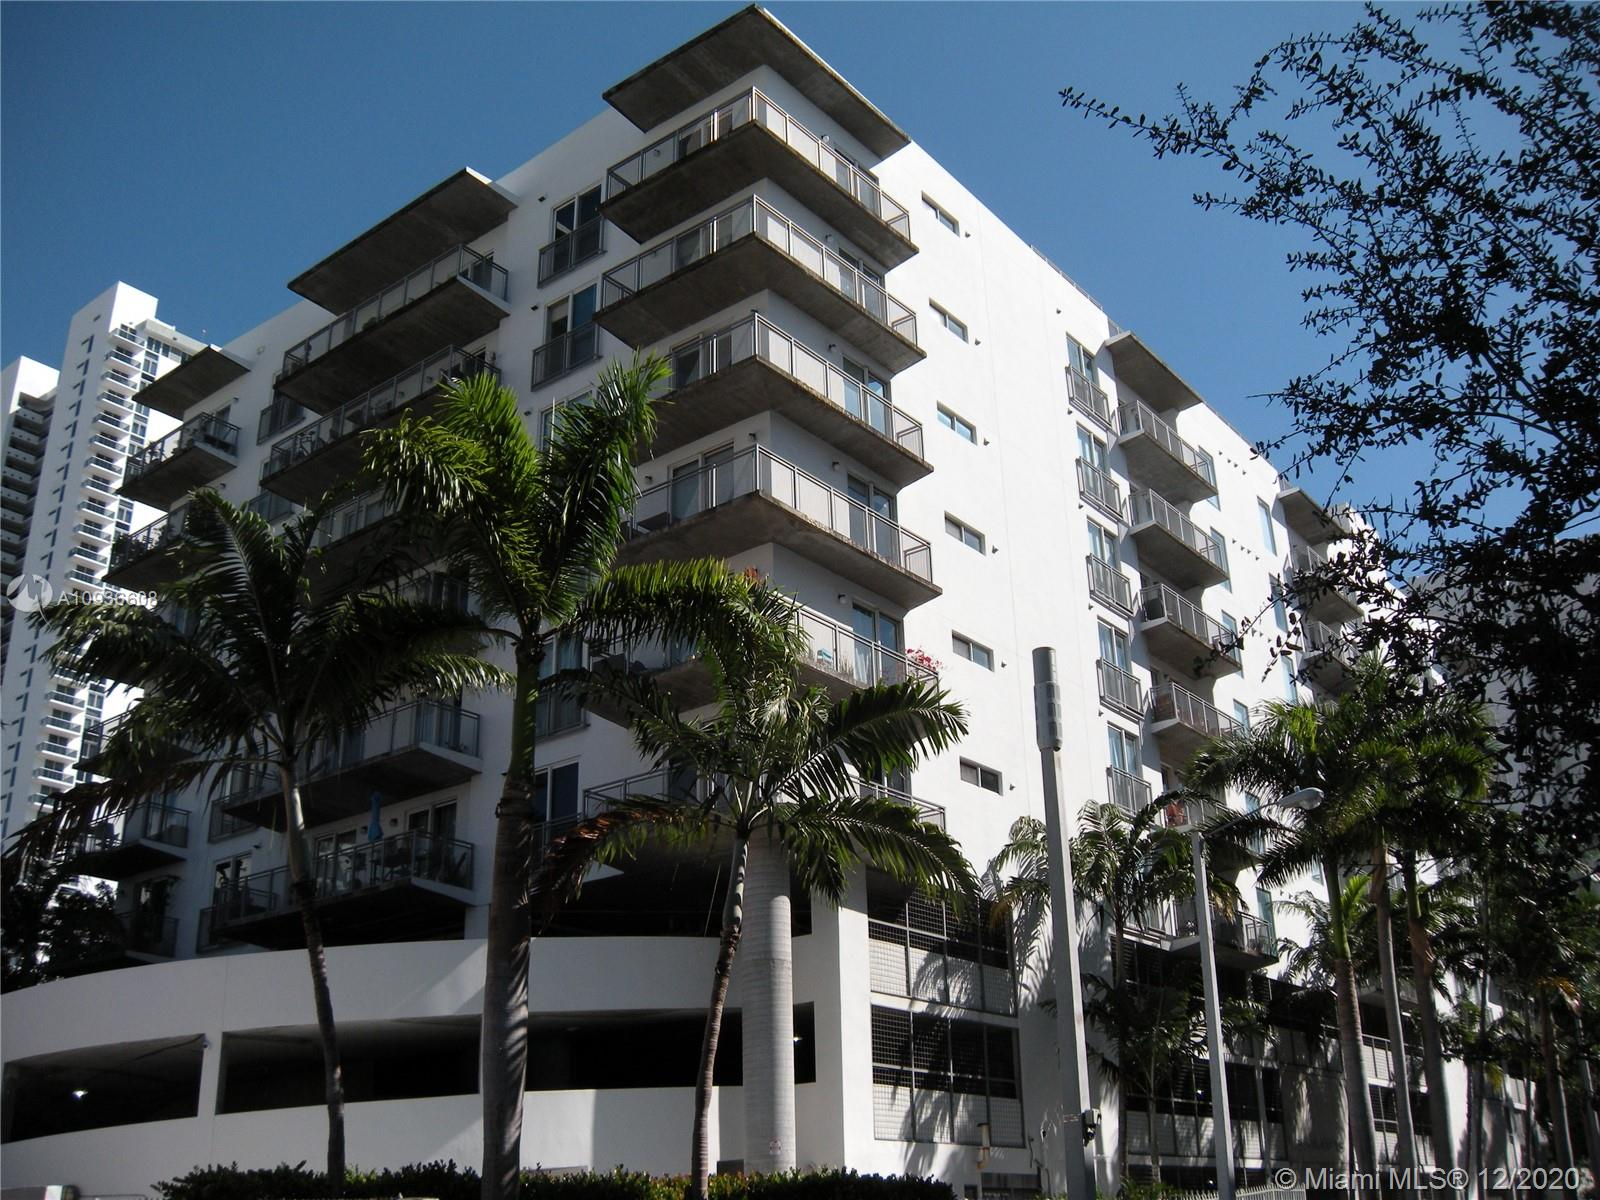 Two parking spaces on this industrial look 1/1.5 New York style condo loft located just minutes from Biscayne Bay in Miami's Design And Art District. This condo loft is located in the booming Wynwood/Edgewater area of Miami. Features include concrete floors, exposed 10ft ceilings, large balcony with Bay and City Views, wood kitchen cabinets, stainless steel appliances, washer and dryer in unit, open living and bedroom spaces, floor to ceiling hurricane proof glass doors, newer paint with decorator colors, walk-in closet and more. Unique 9 story building with pool, gym, club house, security cameras and electronic gates. Free water and trash. One year lease, mandatory association approval.